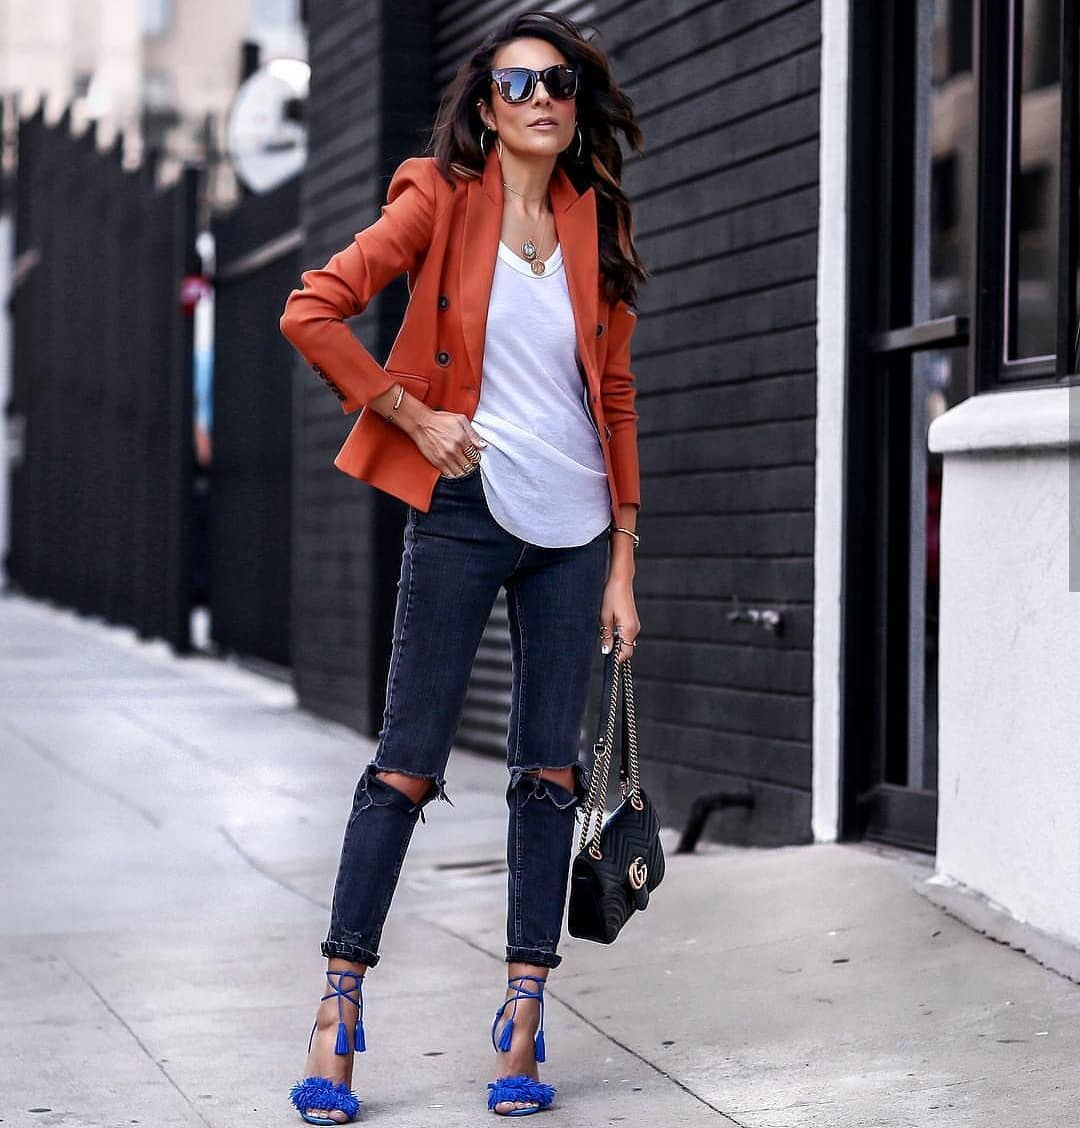 How To Wear Burnt Orange Blazer This Spring 2019